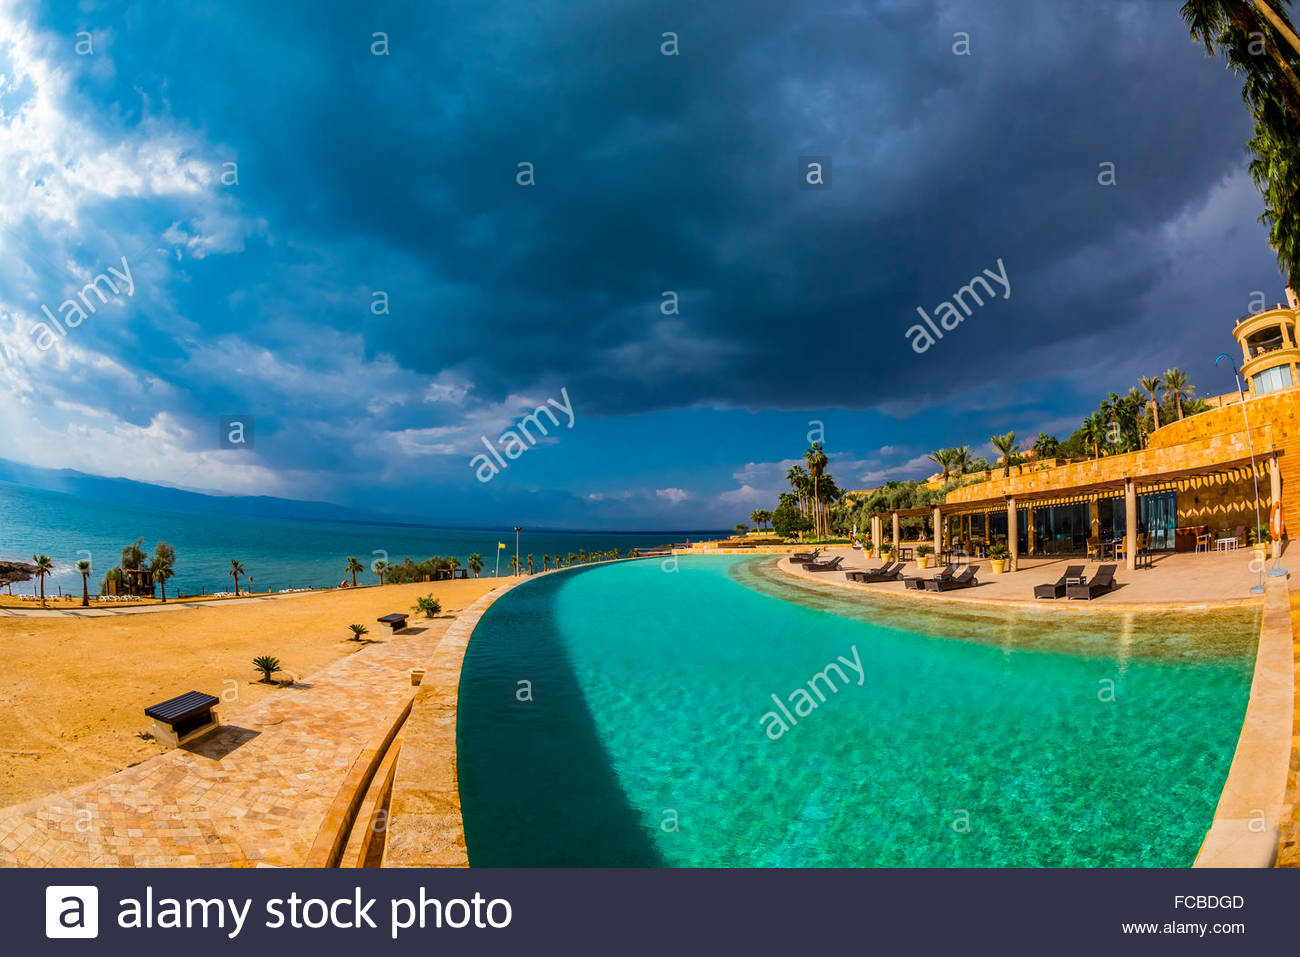 swimming dead sea stockfotos swimming dead sea bilder alamy. Black Bedroom Furniture Sets. Home Design Ideas